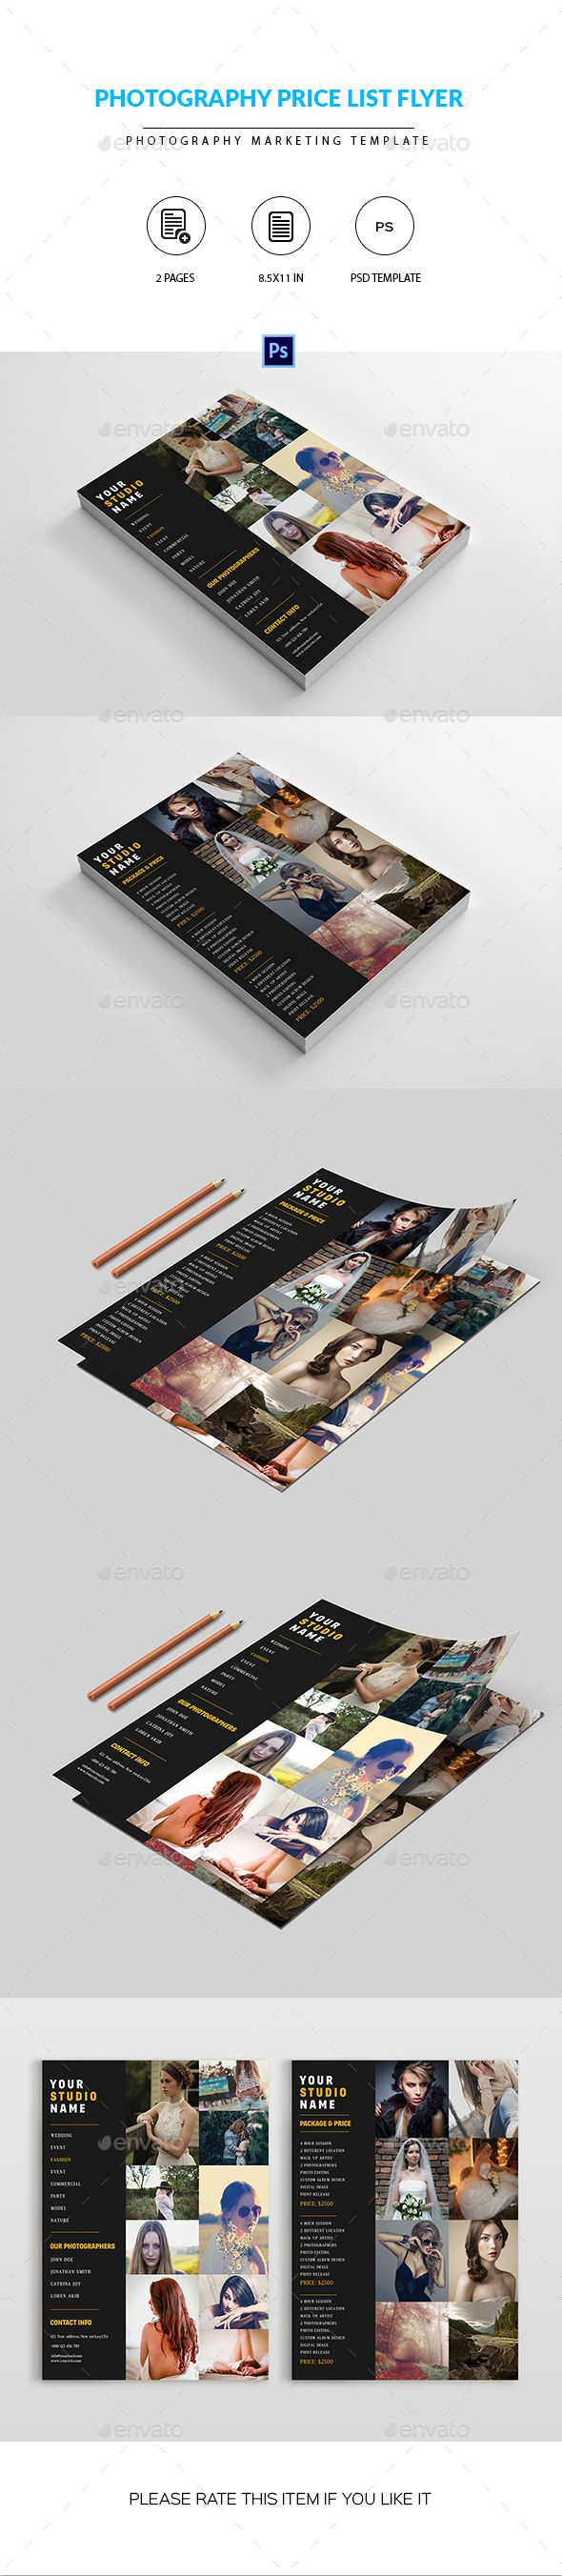 marketing flyers examples